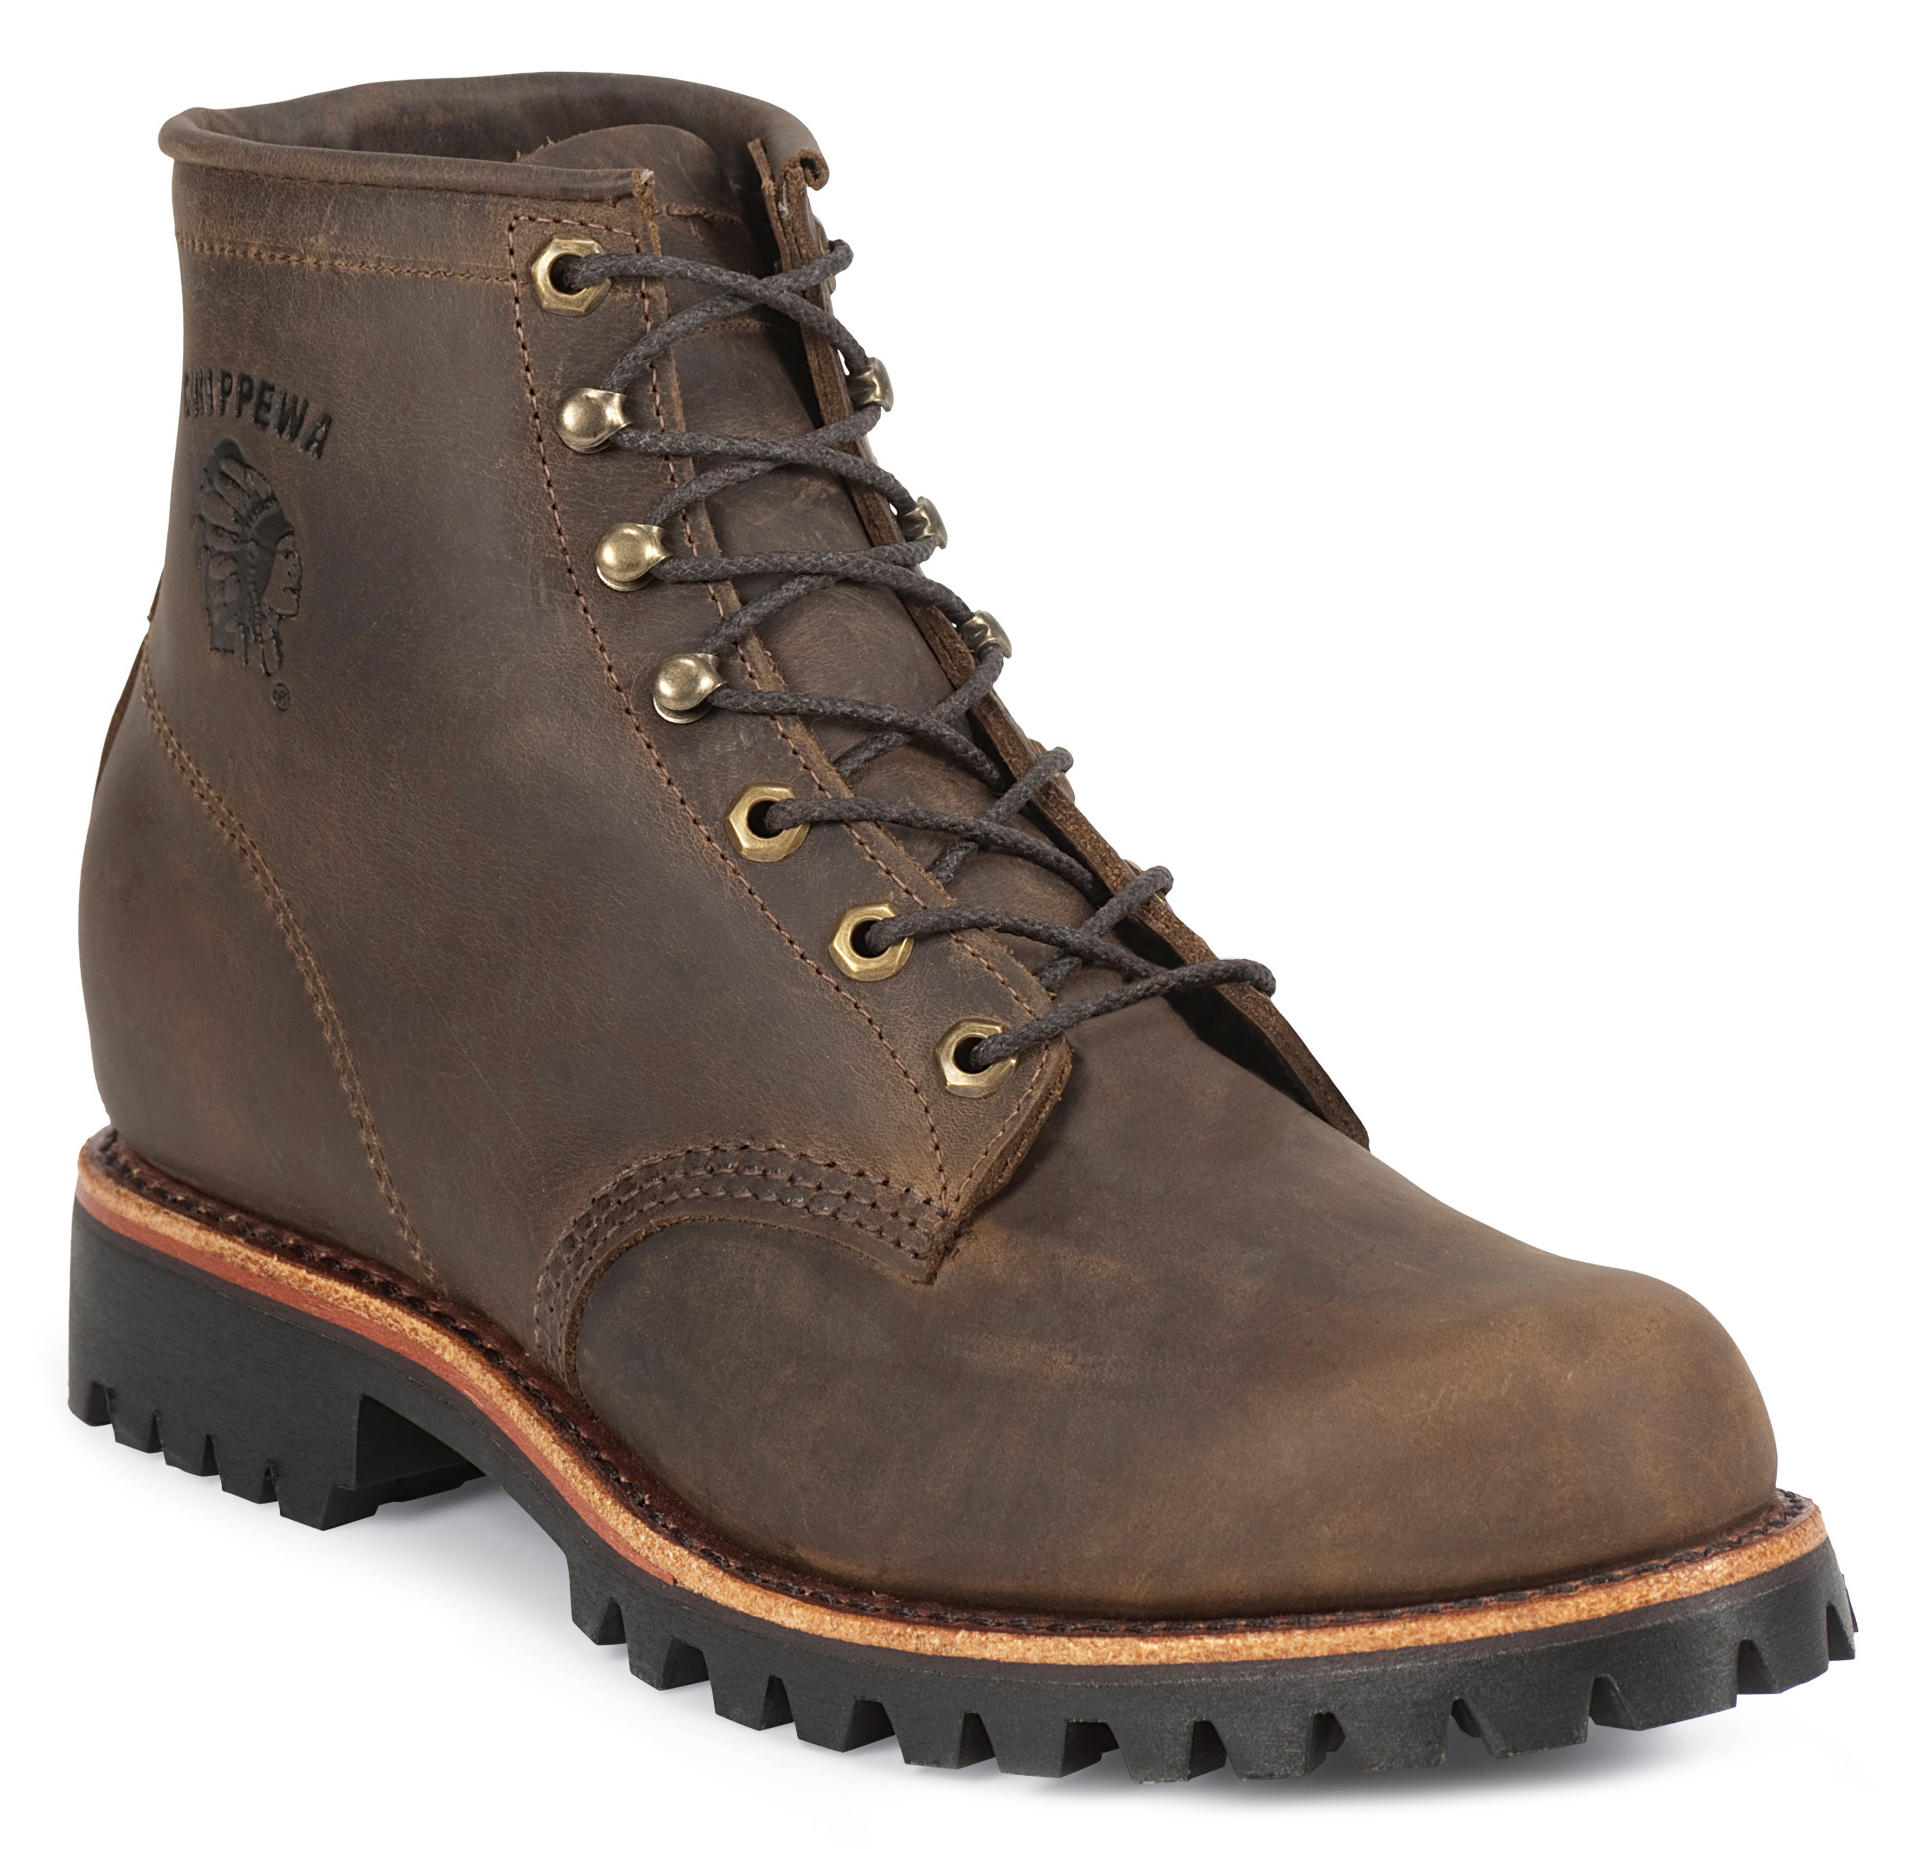 chippewa bay Chippewa bay golden bay apache boots (for men) in tan at sierra trading post celebrating 30 years of exploring.